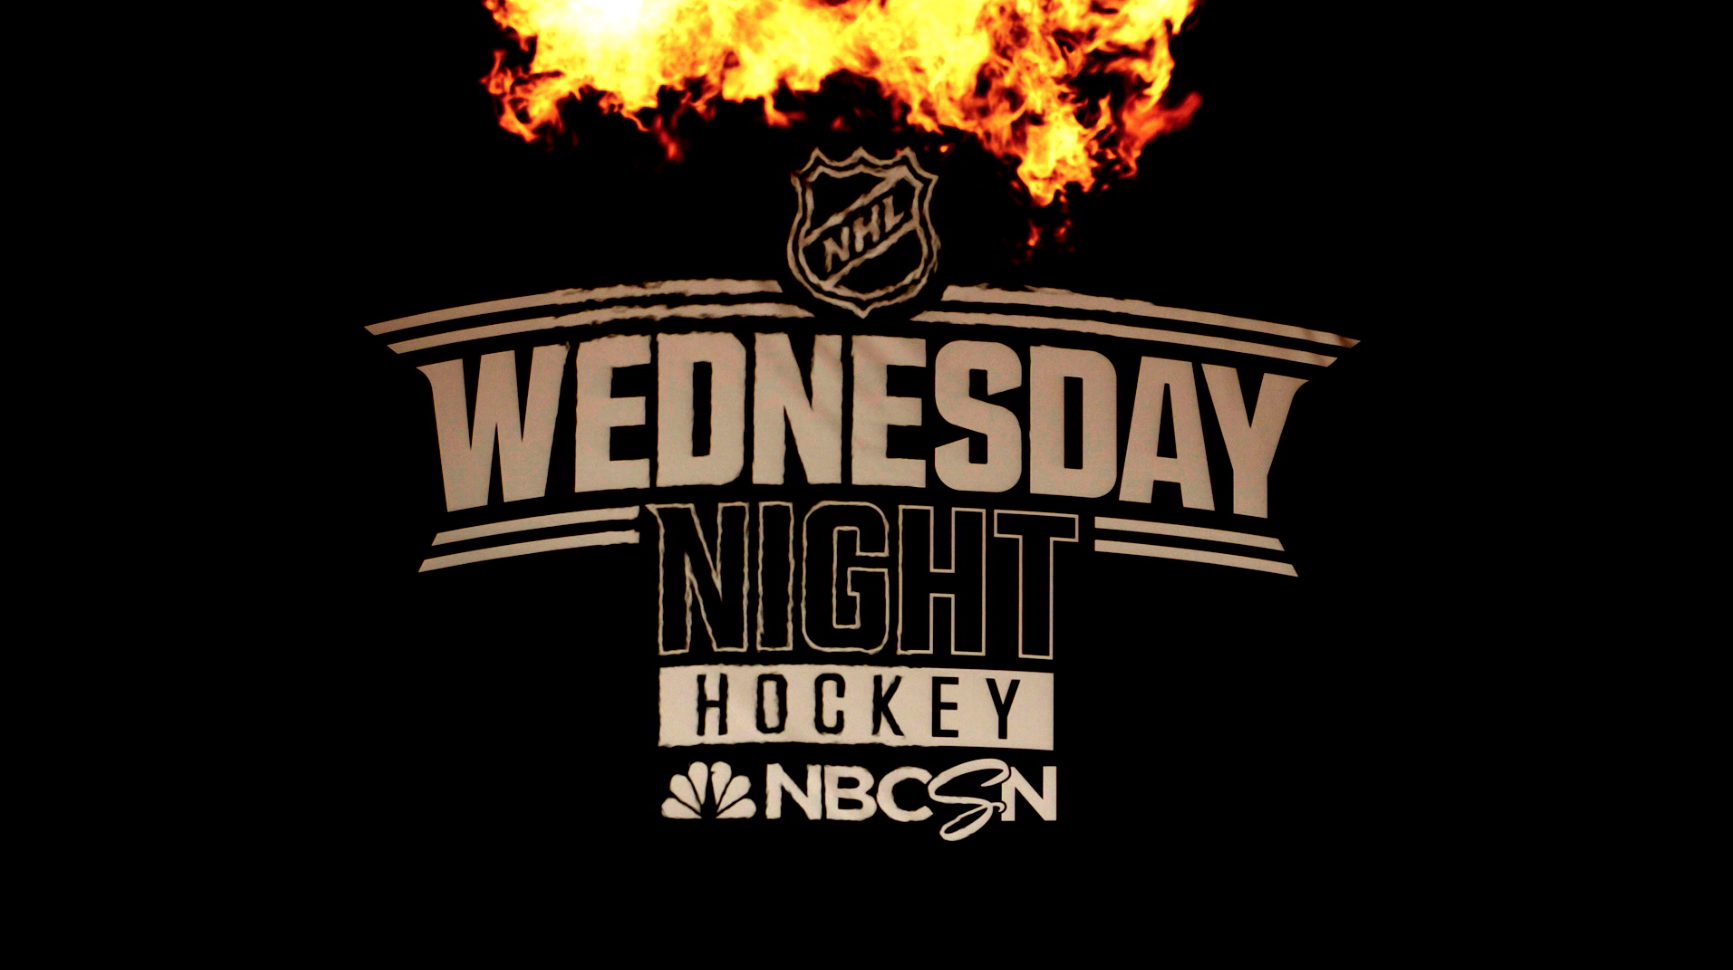 NBC///NHL 2020'Season opener/// commercials. - otherfilms and NBC Sports brought Me along as a Director of photography